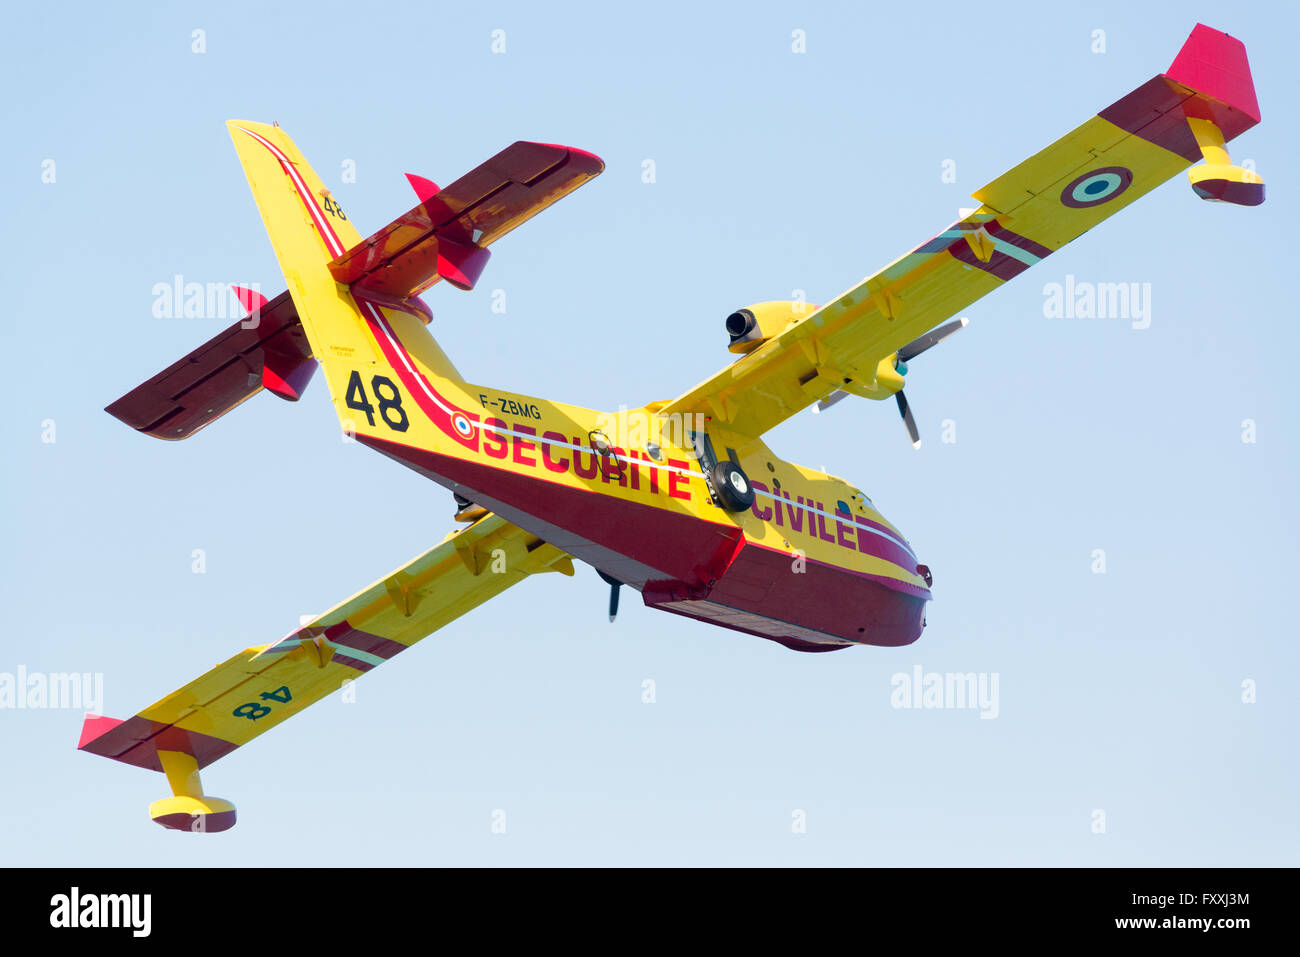 A CL-415 (Canadair Bombardier 415) of the French Sécurité Civile flying over Ile-Rousse, Mediterranean - Stock Image